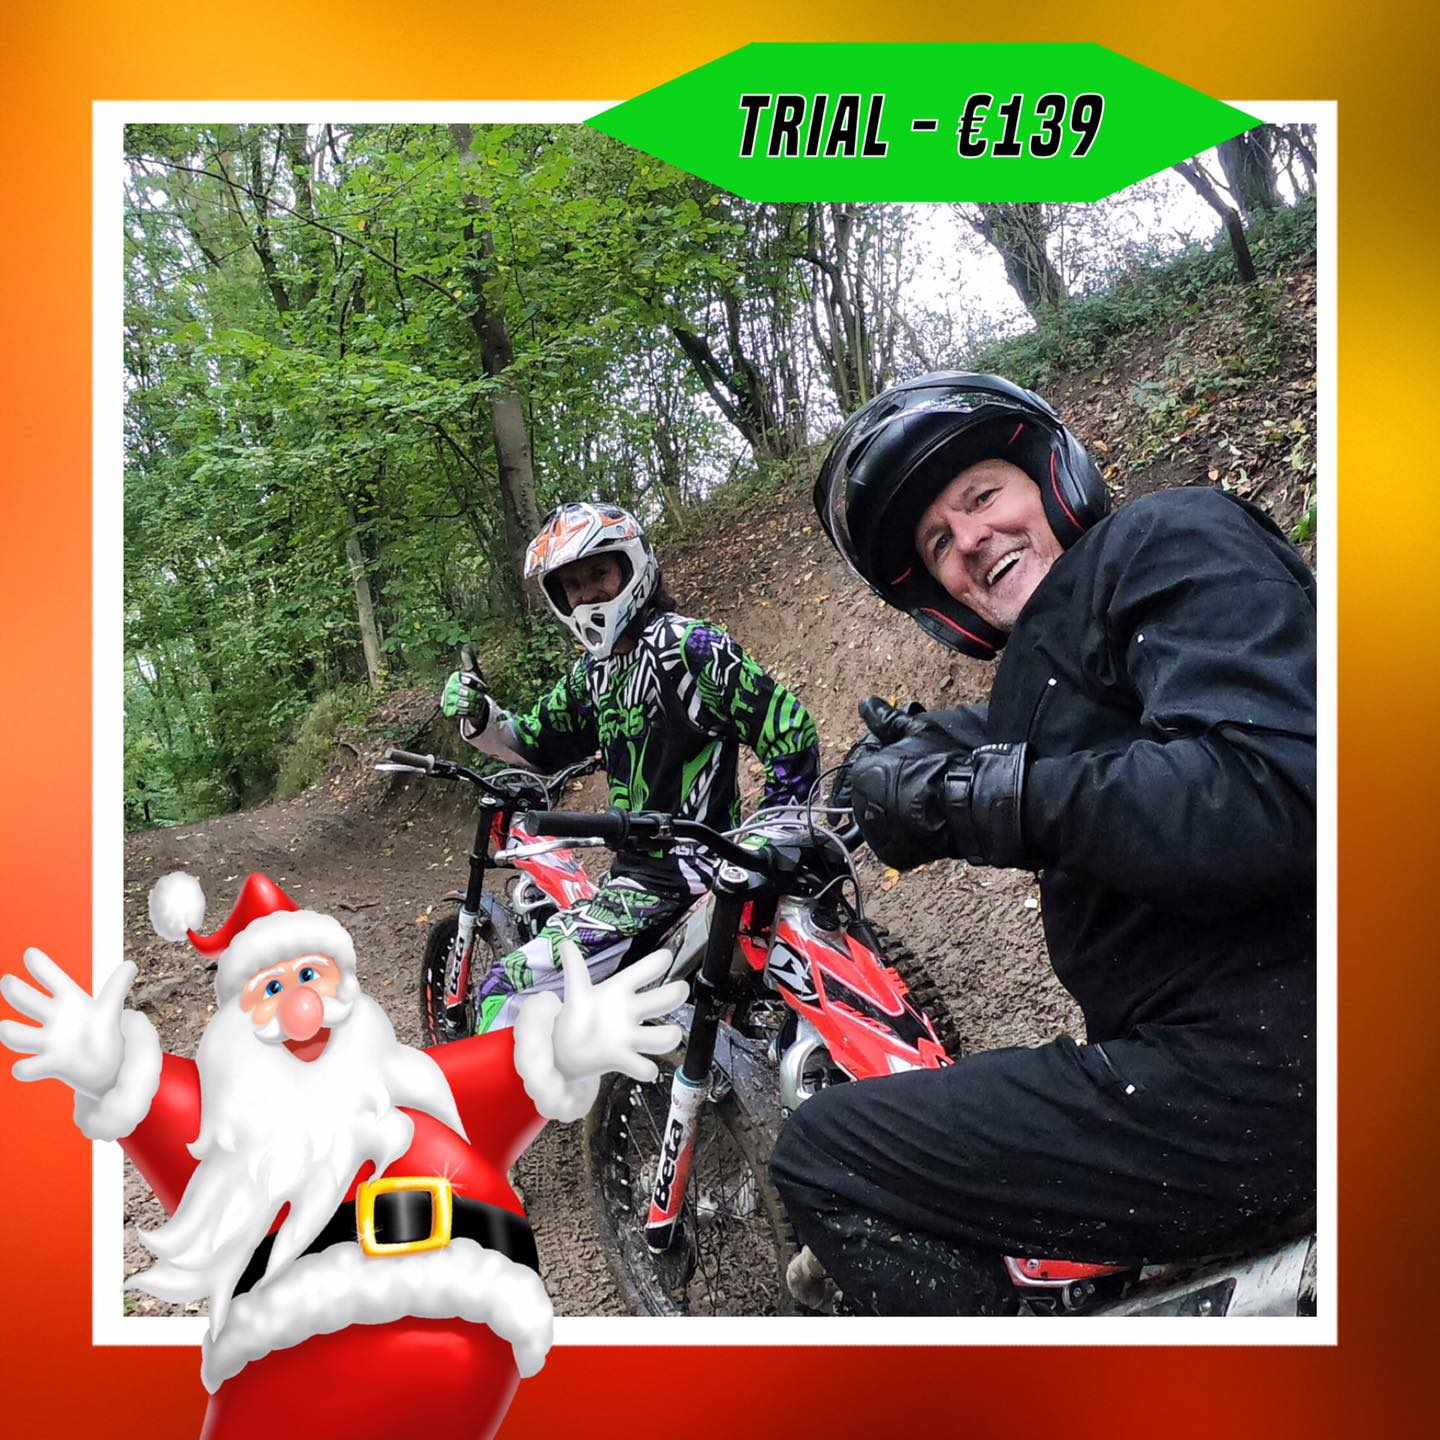 Kerst-initiaties Bilstain Endurofun 34